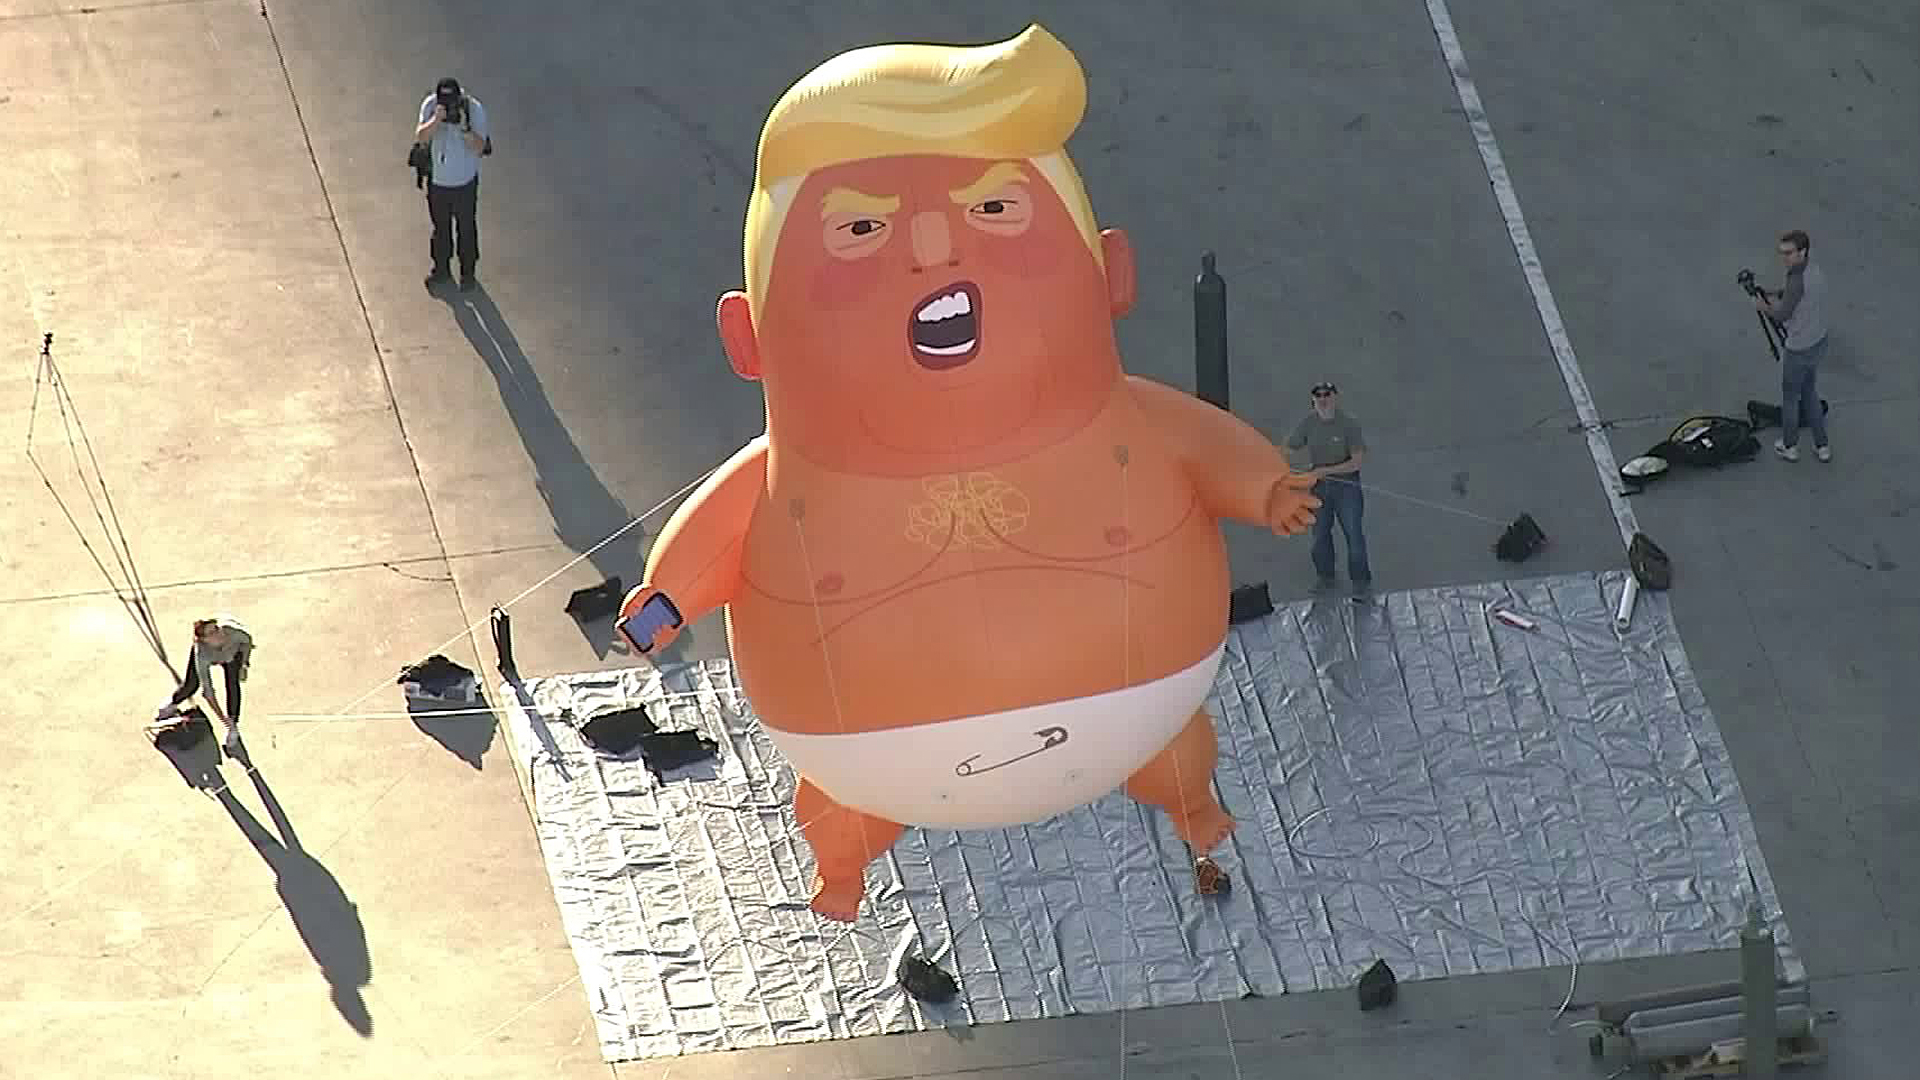 A giant balloon depicting U.S. President Donald Trump as an orange baby is seen in downtown Los Angeles on Oct. 19, 2018. (Credit: KTLA)